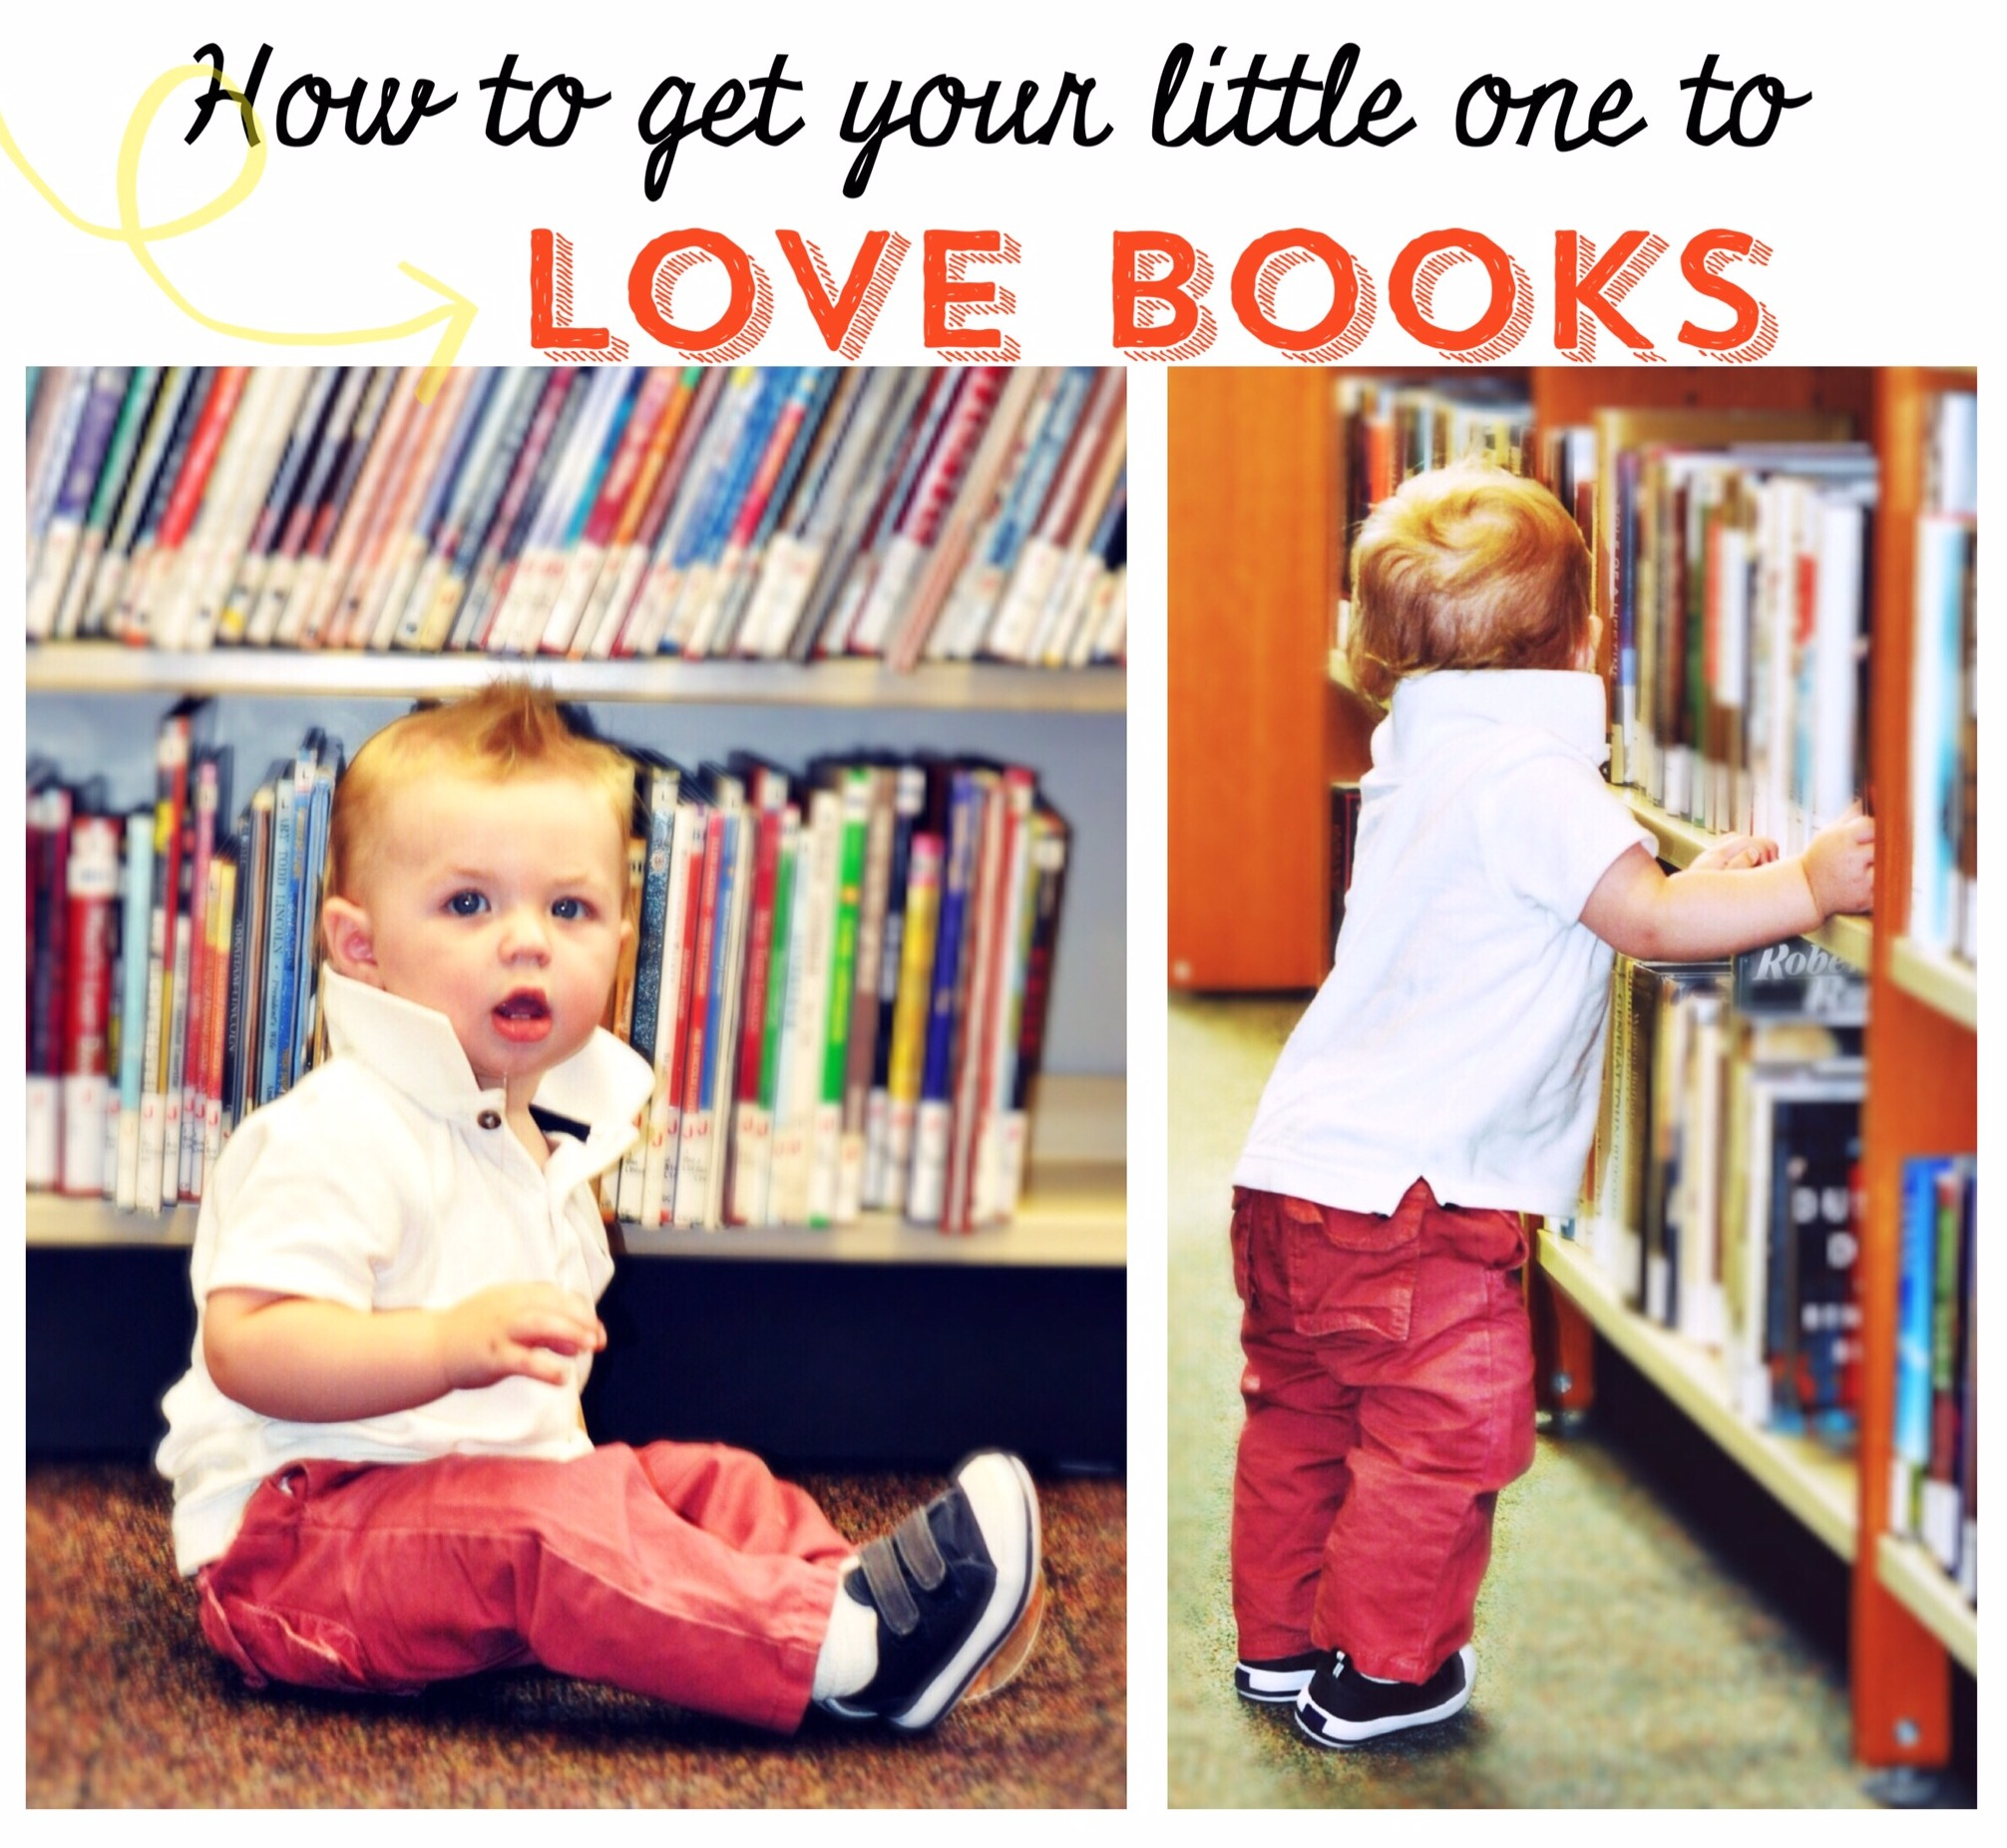 How To Get Your Baby / Toddler to Love Books Reading www.frostedevents.com